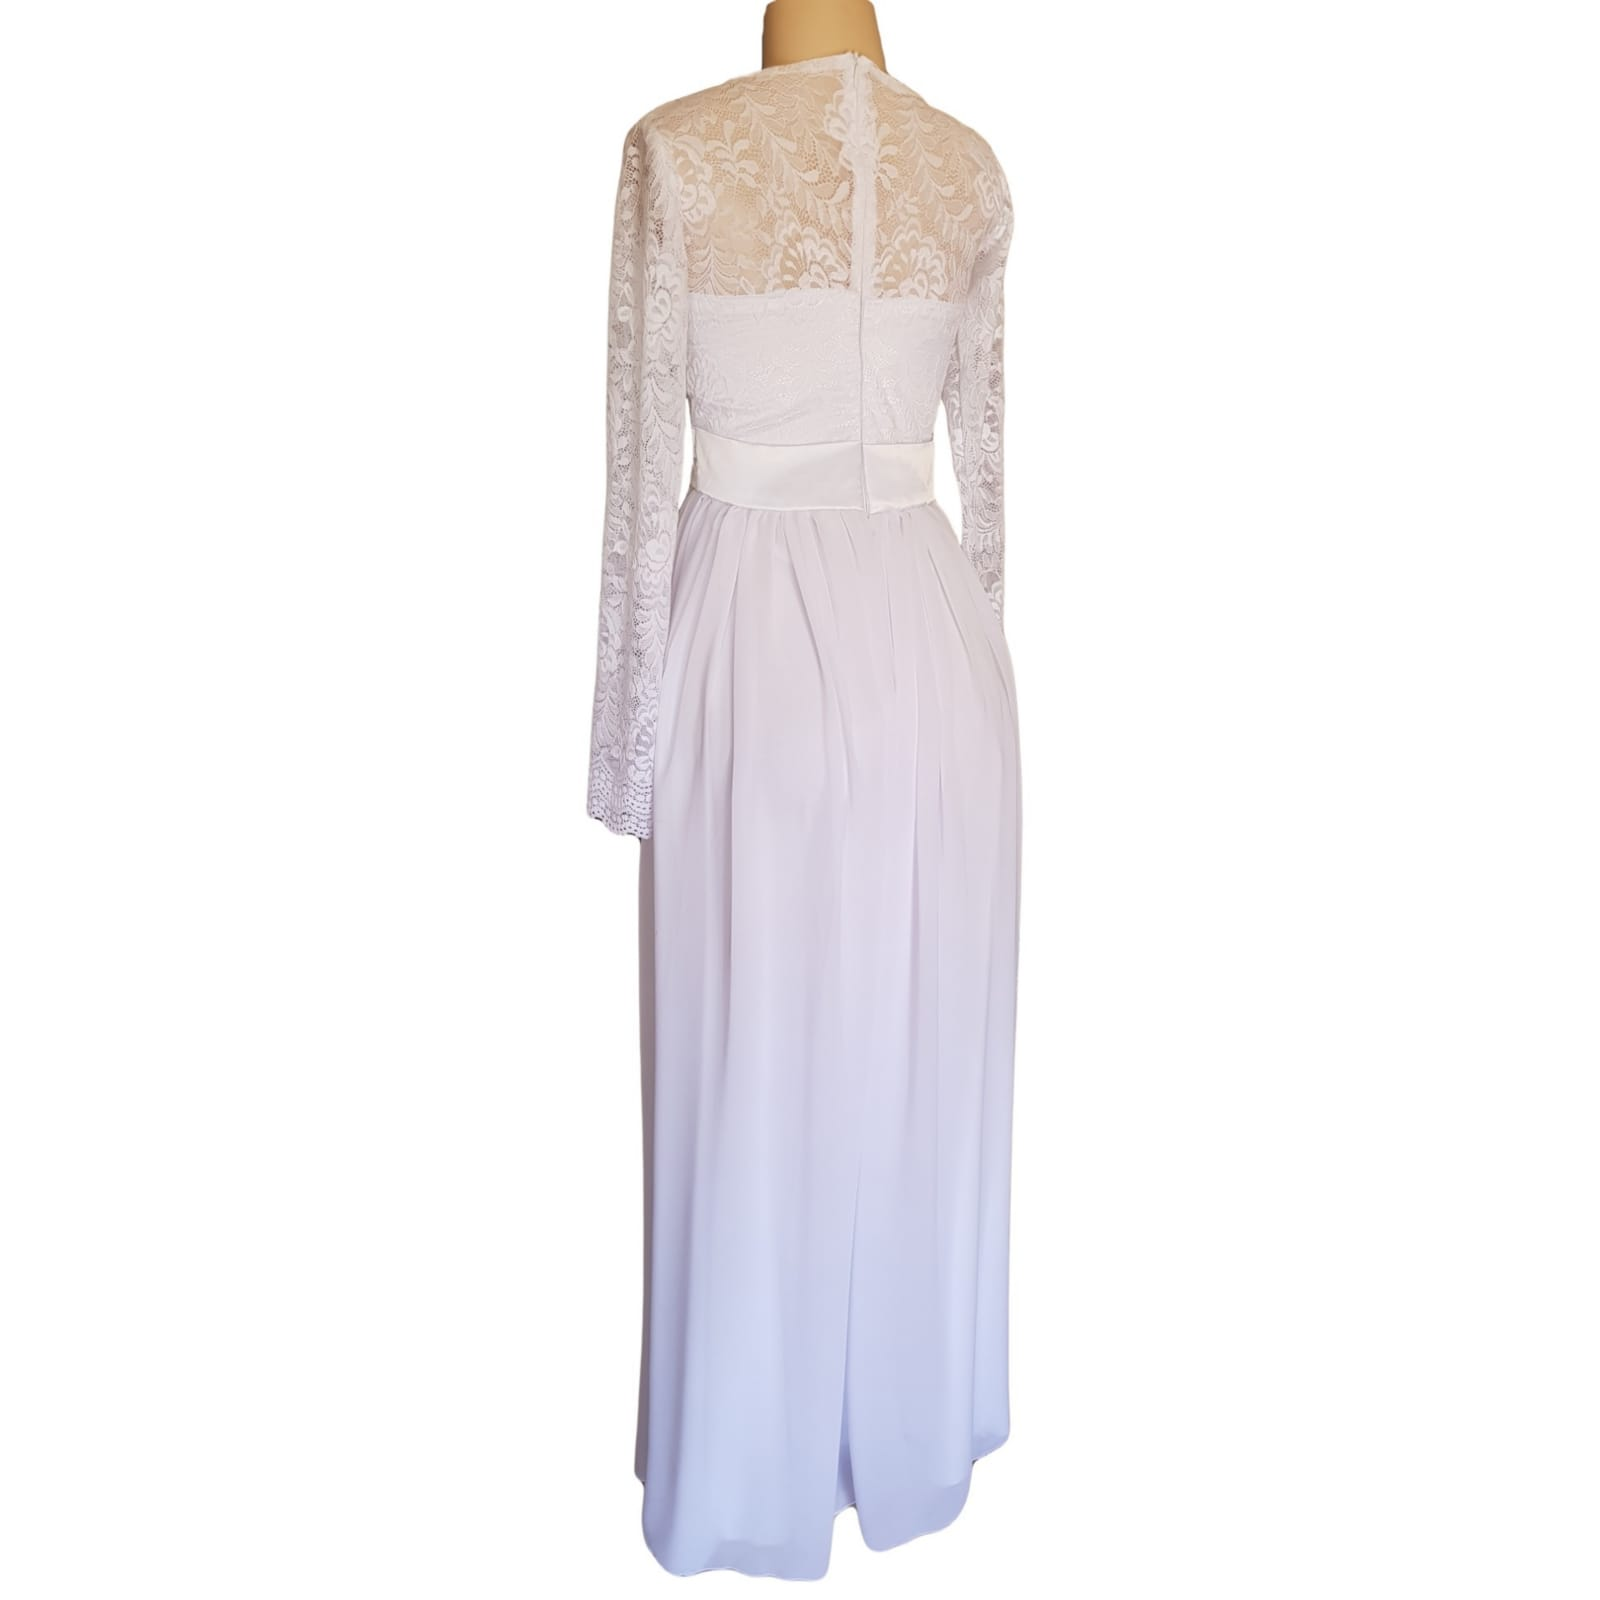 White lace bodice simple confirmation dress 6 white long lace bodice confirmation dress with long lace sleeves and a satin belt.